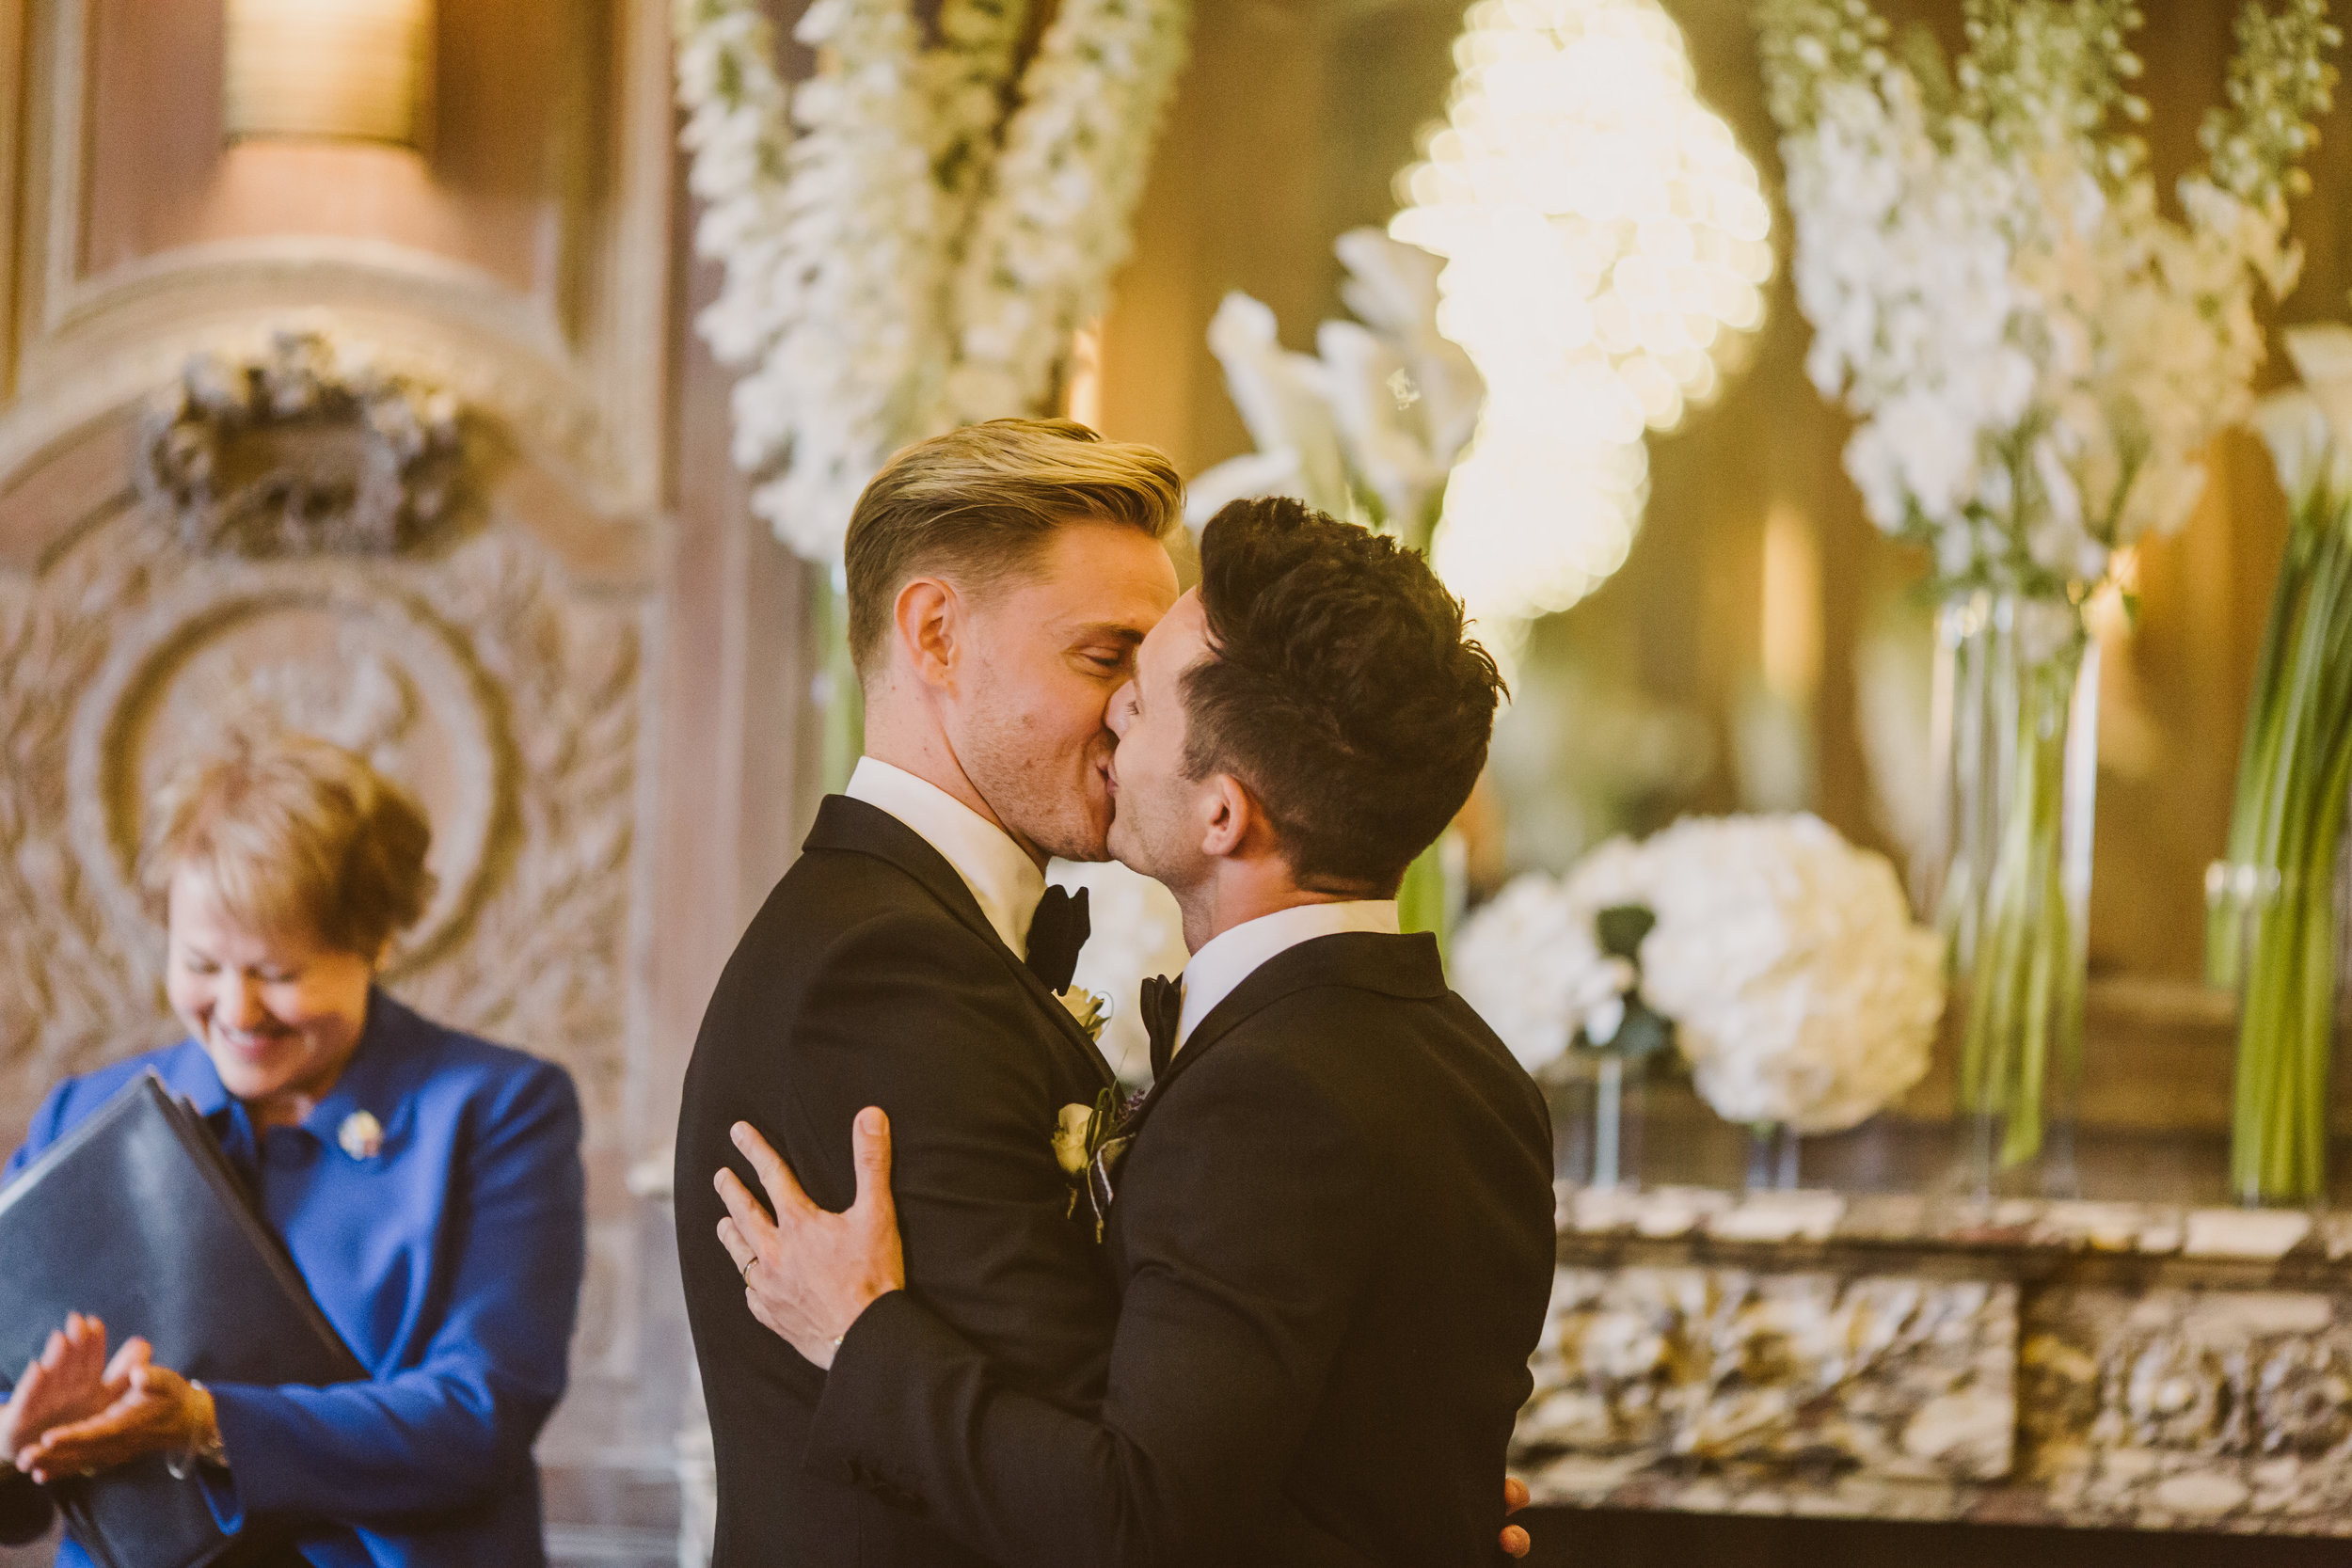 mr-theodore_same-sex-wedding10.jpg